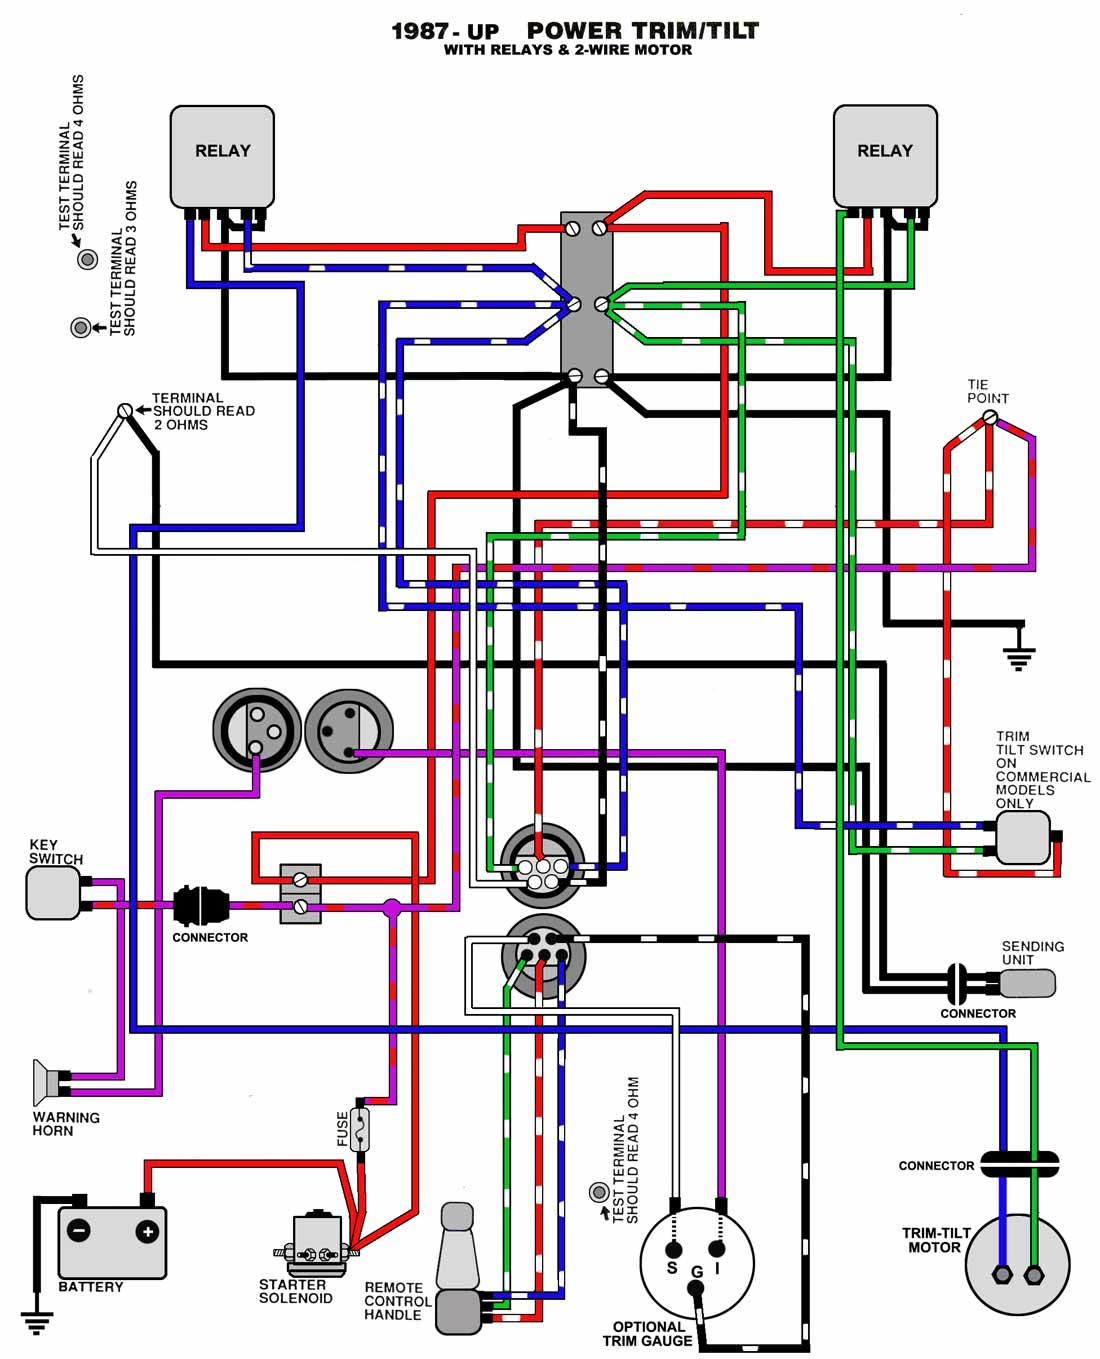 TnT_87_UP evinrude wiring diagram free evinrude wiring diagrams \u2022 free johnson outboard motor wiring harness 50 hp at soozxer.org